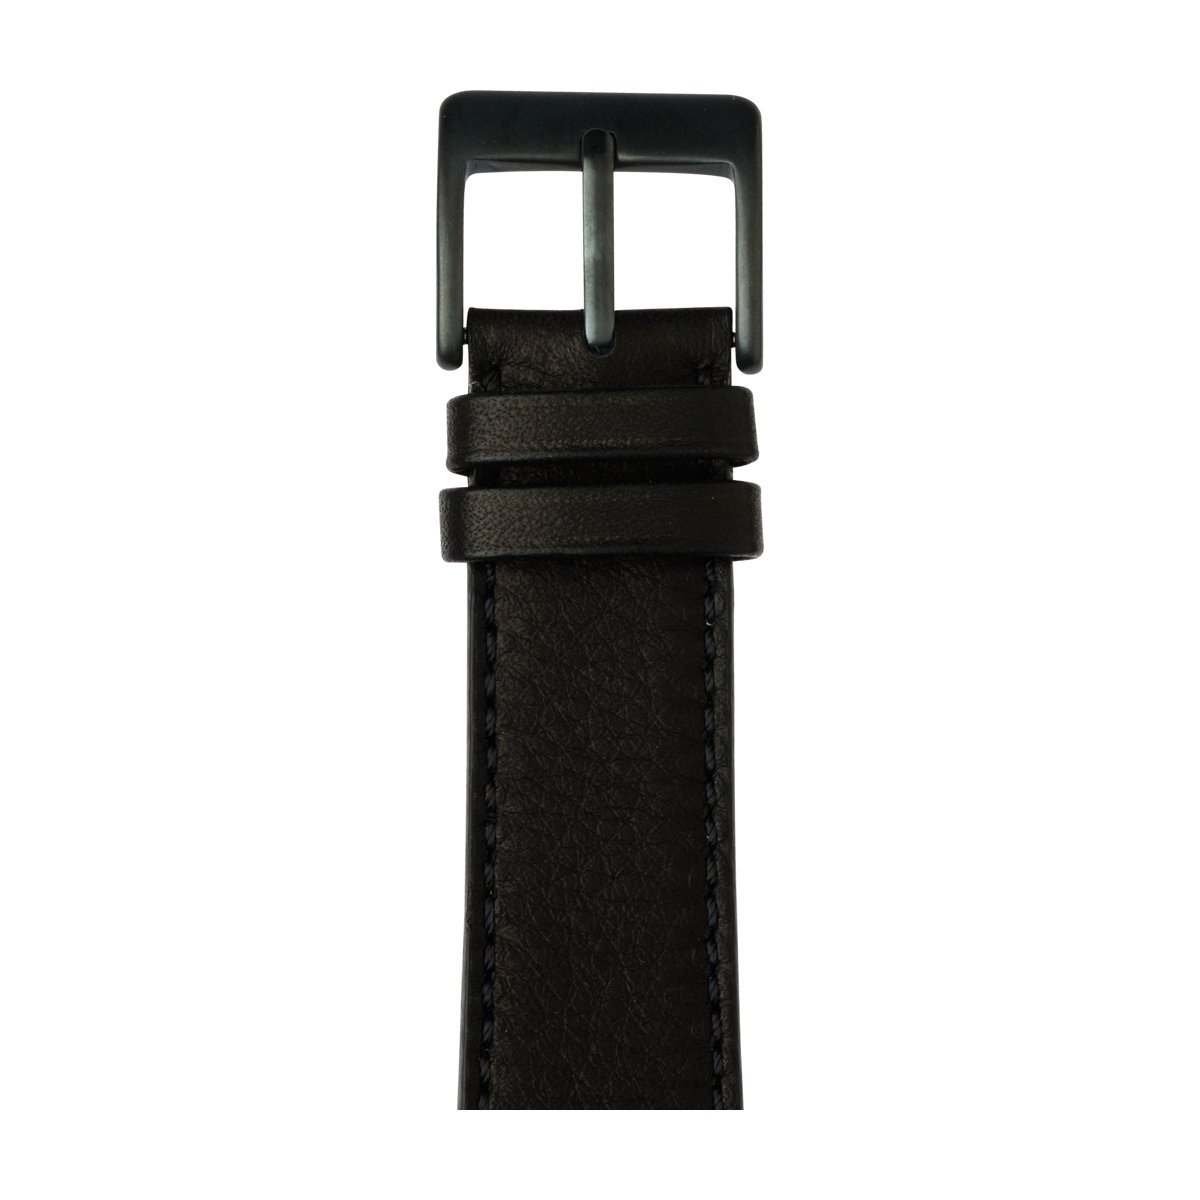 Roobaya | Premium Sauvage Leather Apple Watch Band in Black | Includes Adapters matching the Color of the Apple Watch, Case Color:Space Gray Aluminum, Size:42 mm